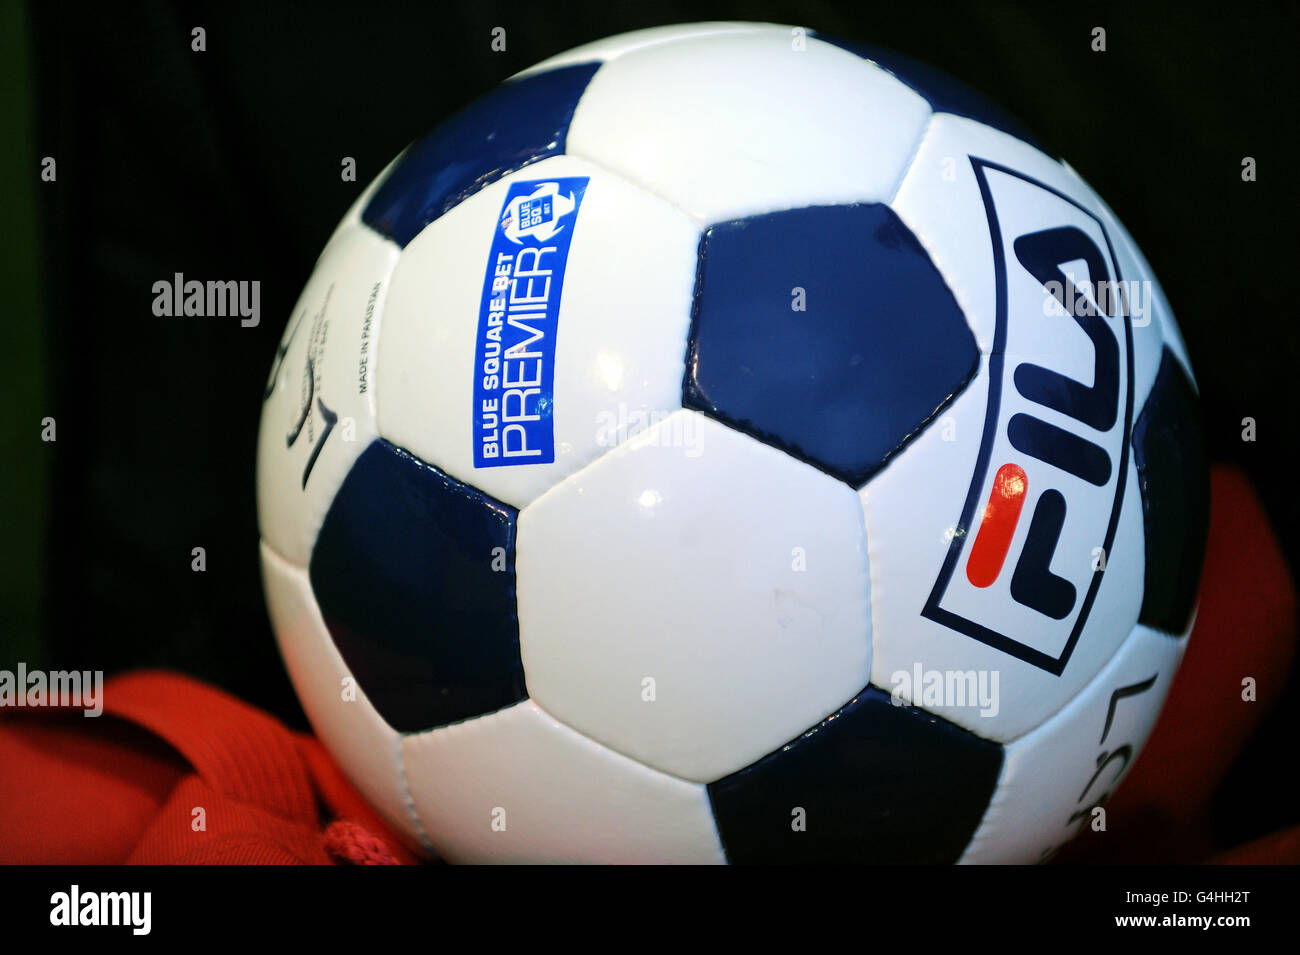 Blue square betting football for dummies bets betting